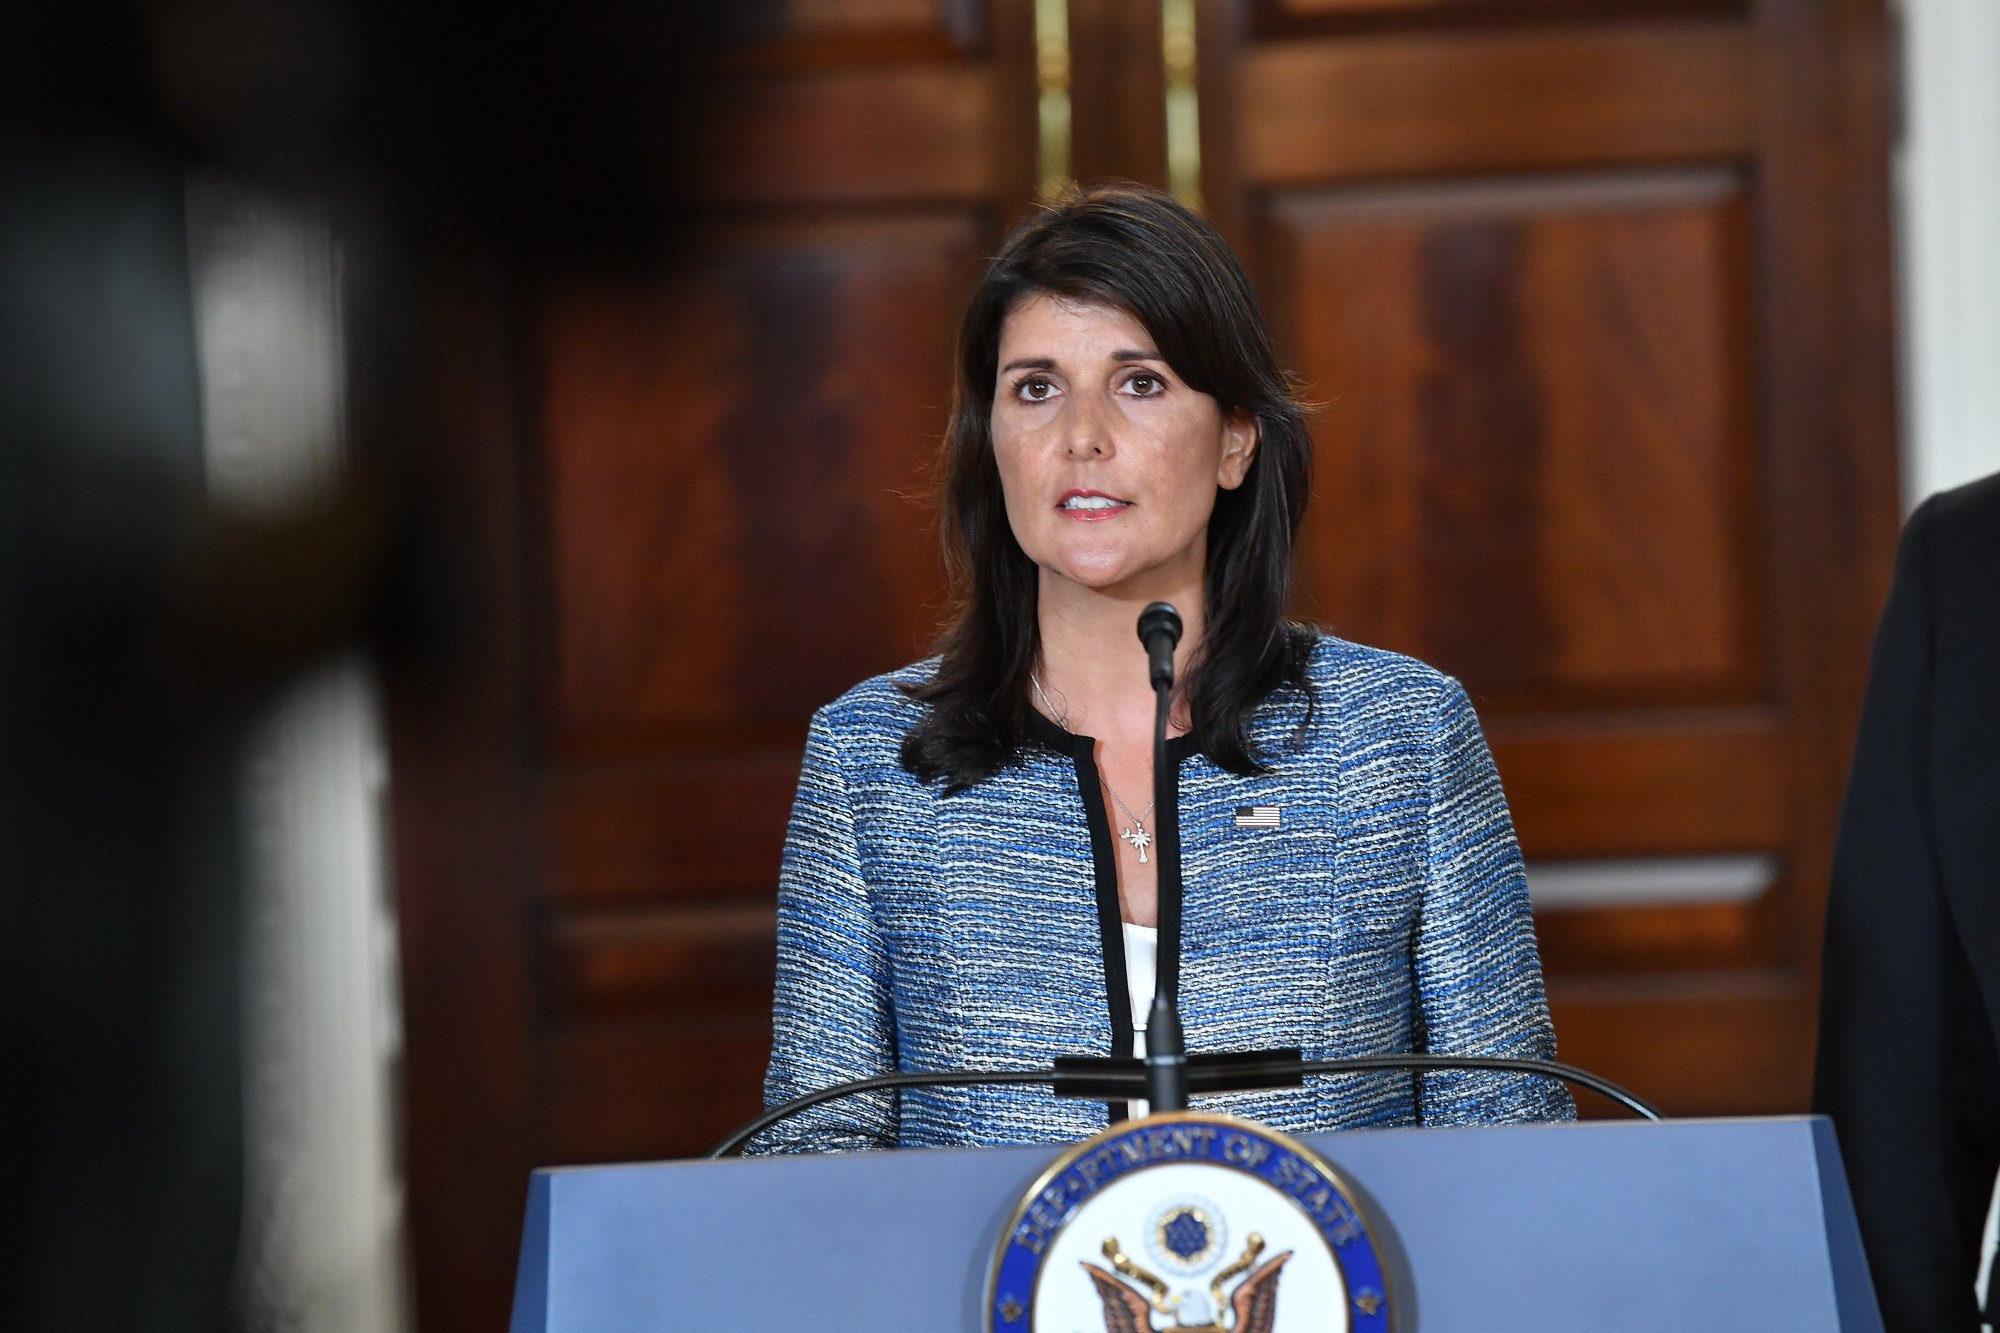 FITSNews – Conspiracy Theories: Nikki Haley Is Not Eligible To Run For President?